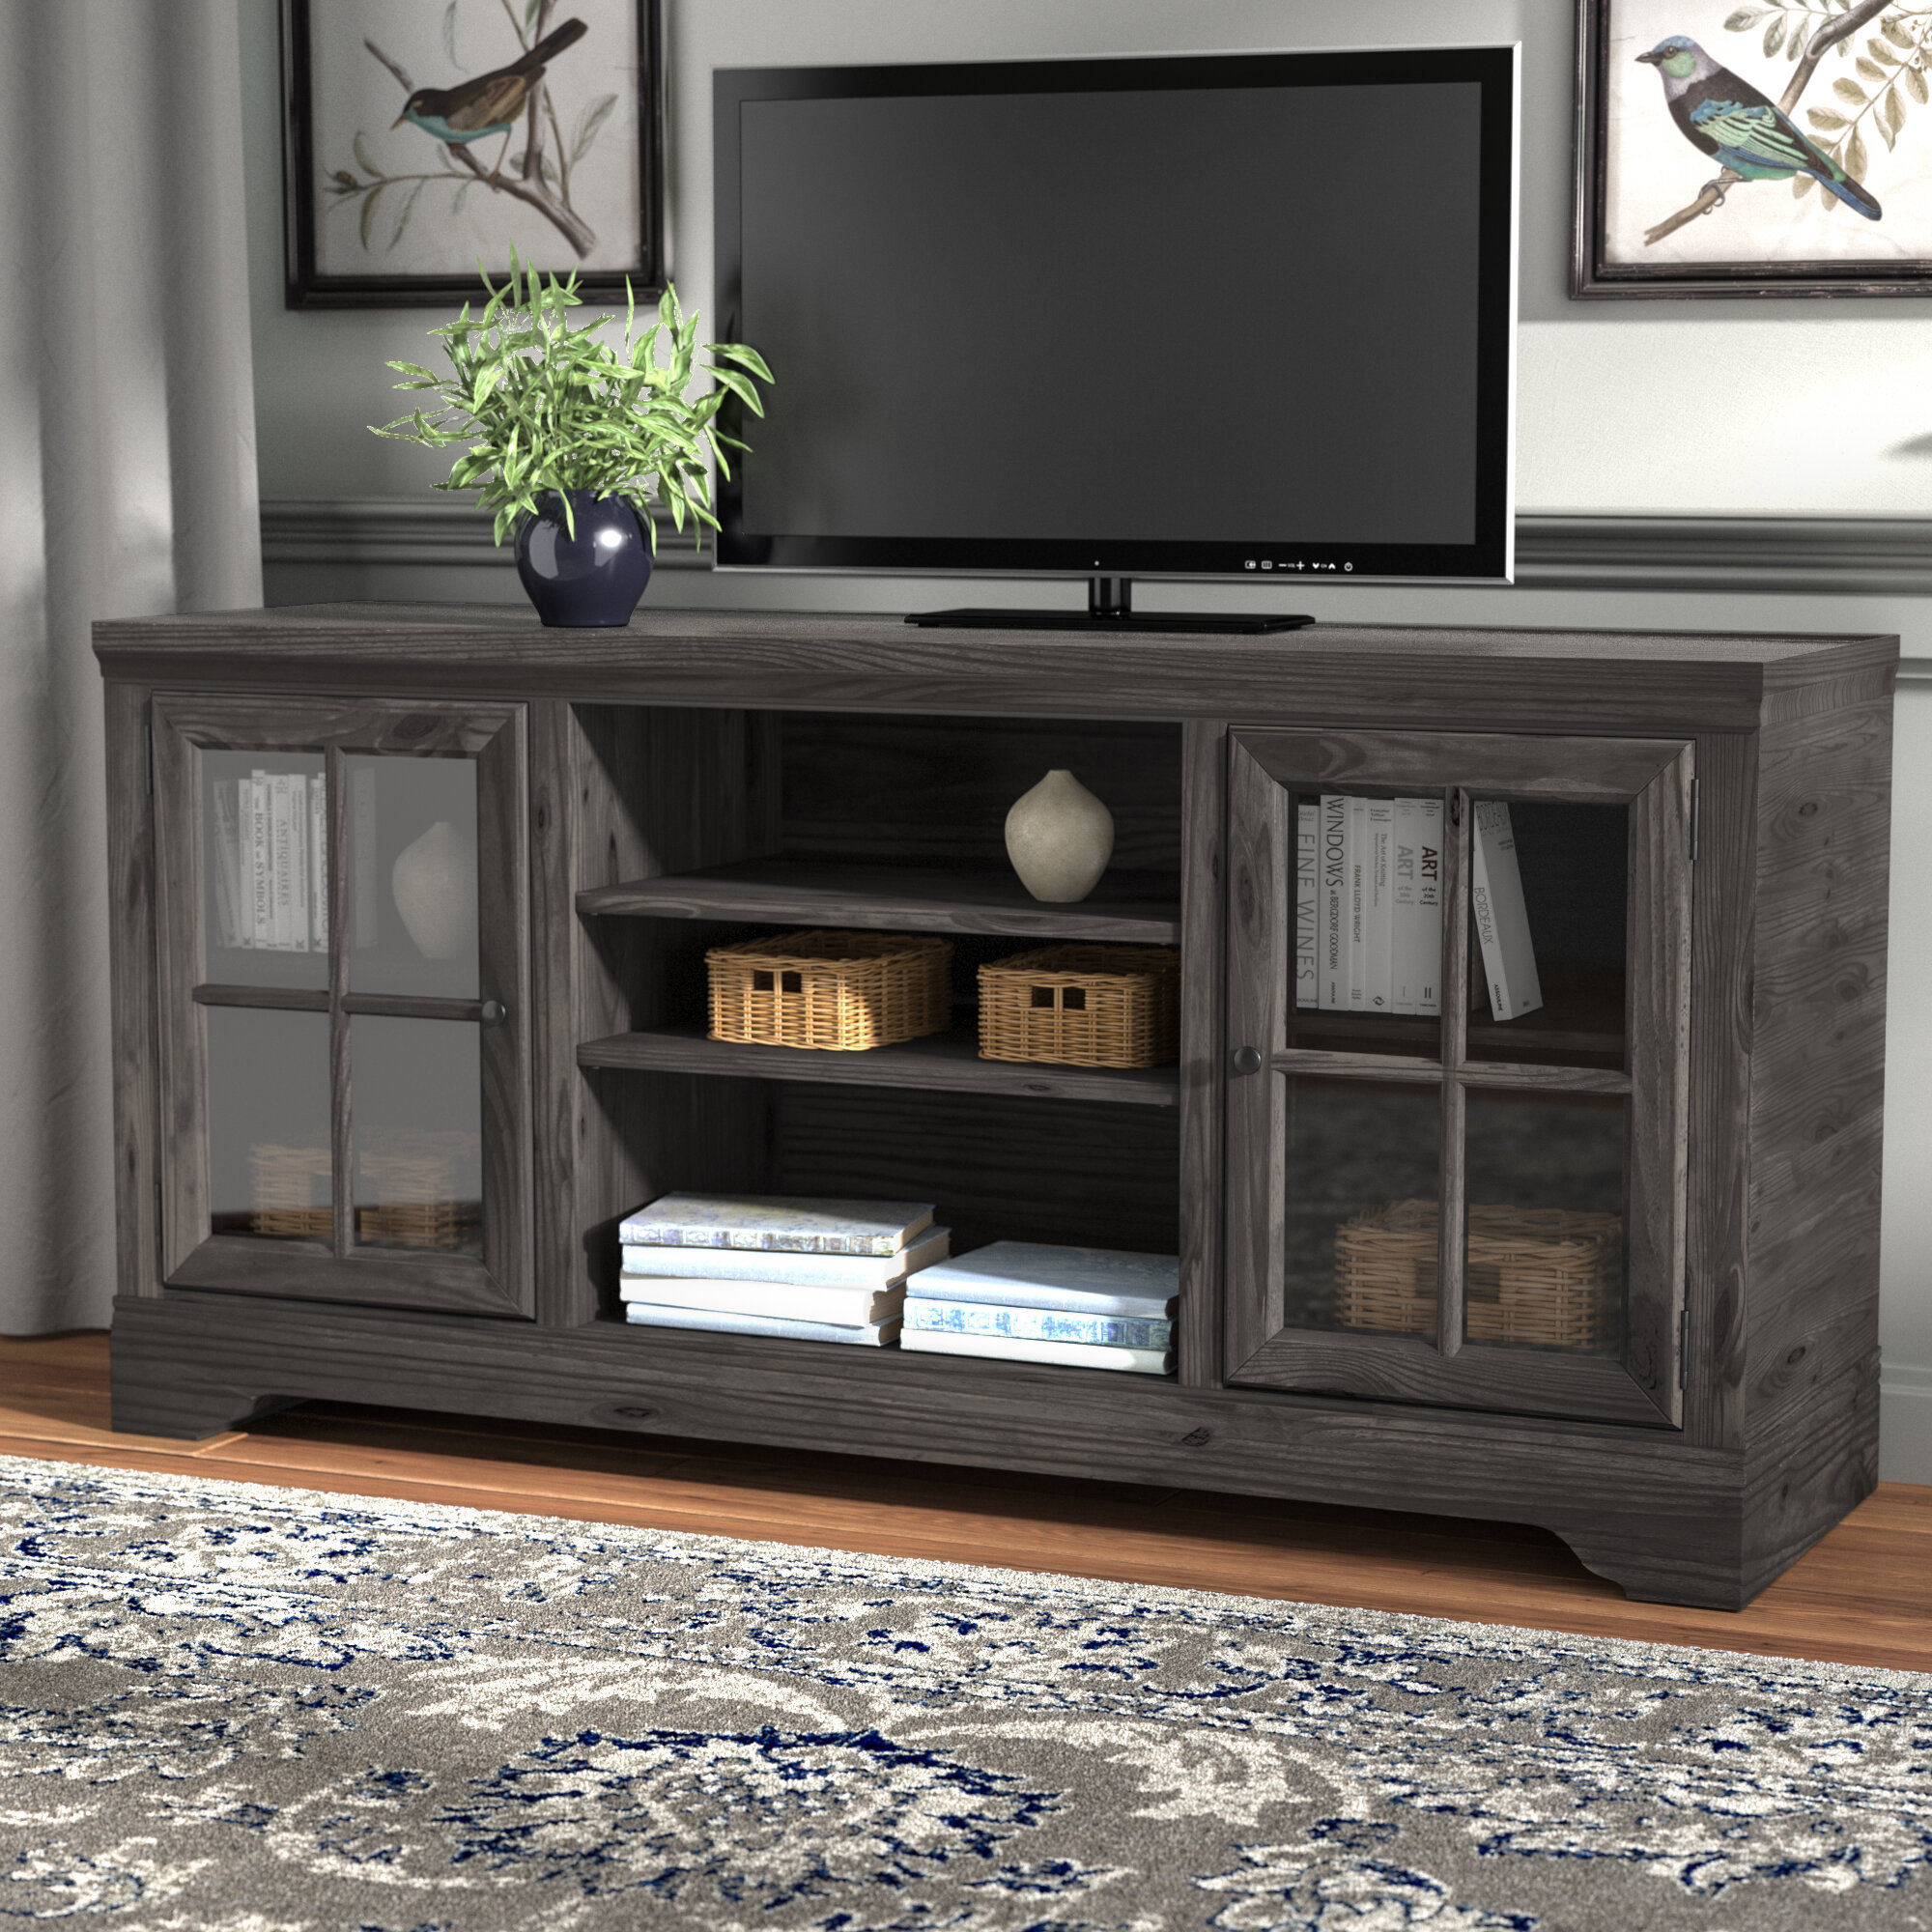 Rustic Style Entertainment Centers